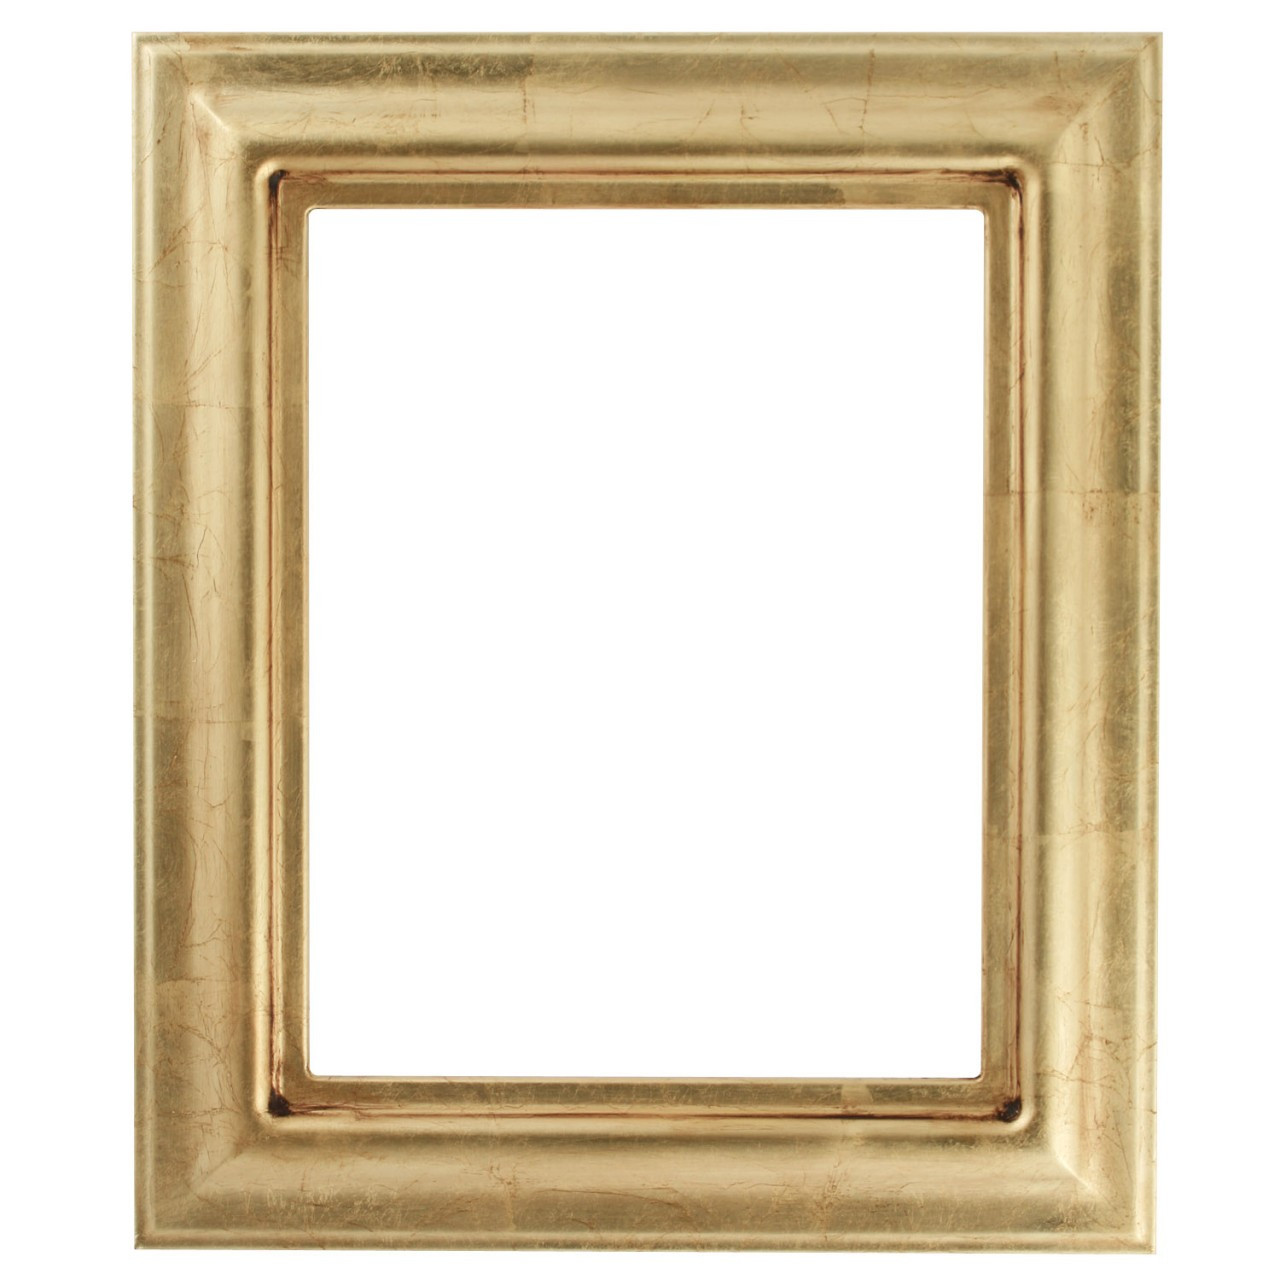 Rectangle Frame in Gold Leaf Finish| Simple Gold Picture Frames